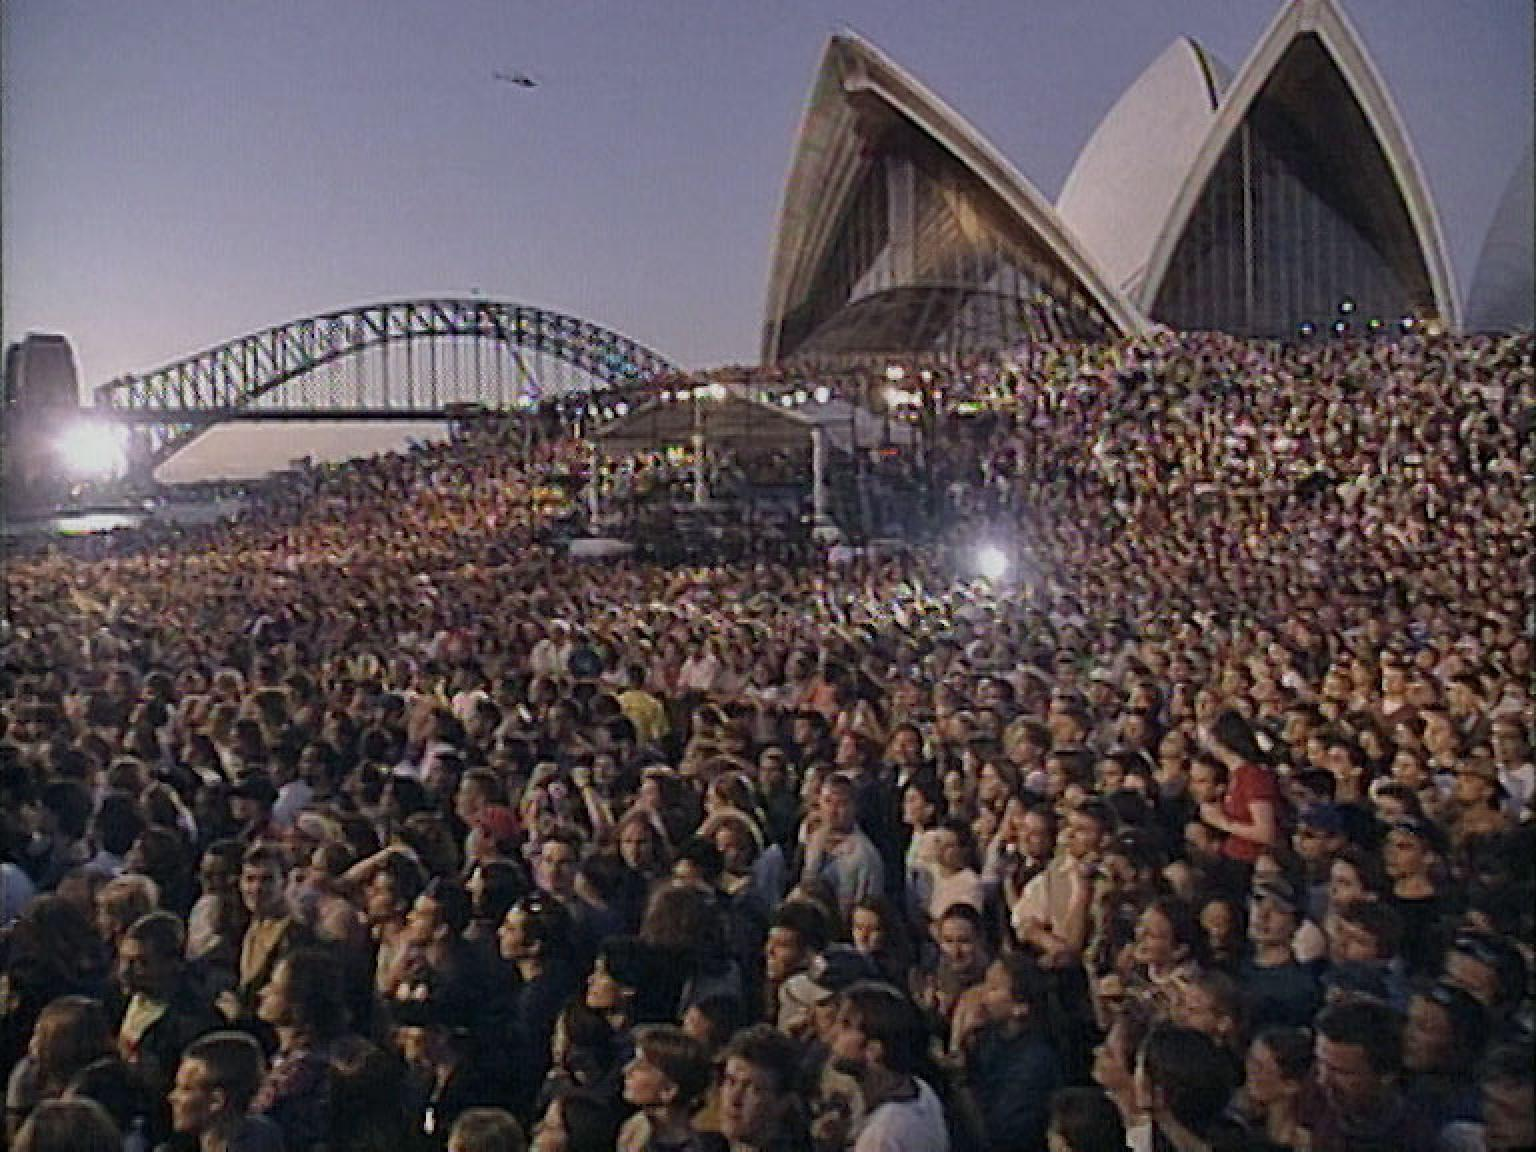 A sea of people cover the forecourt steps of the Opera House. The Sydney Opera House sails and the Sydney Harbour Bridge are in the background.